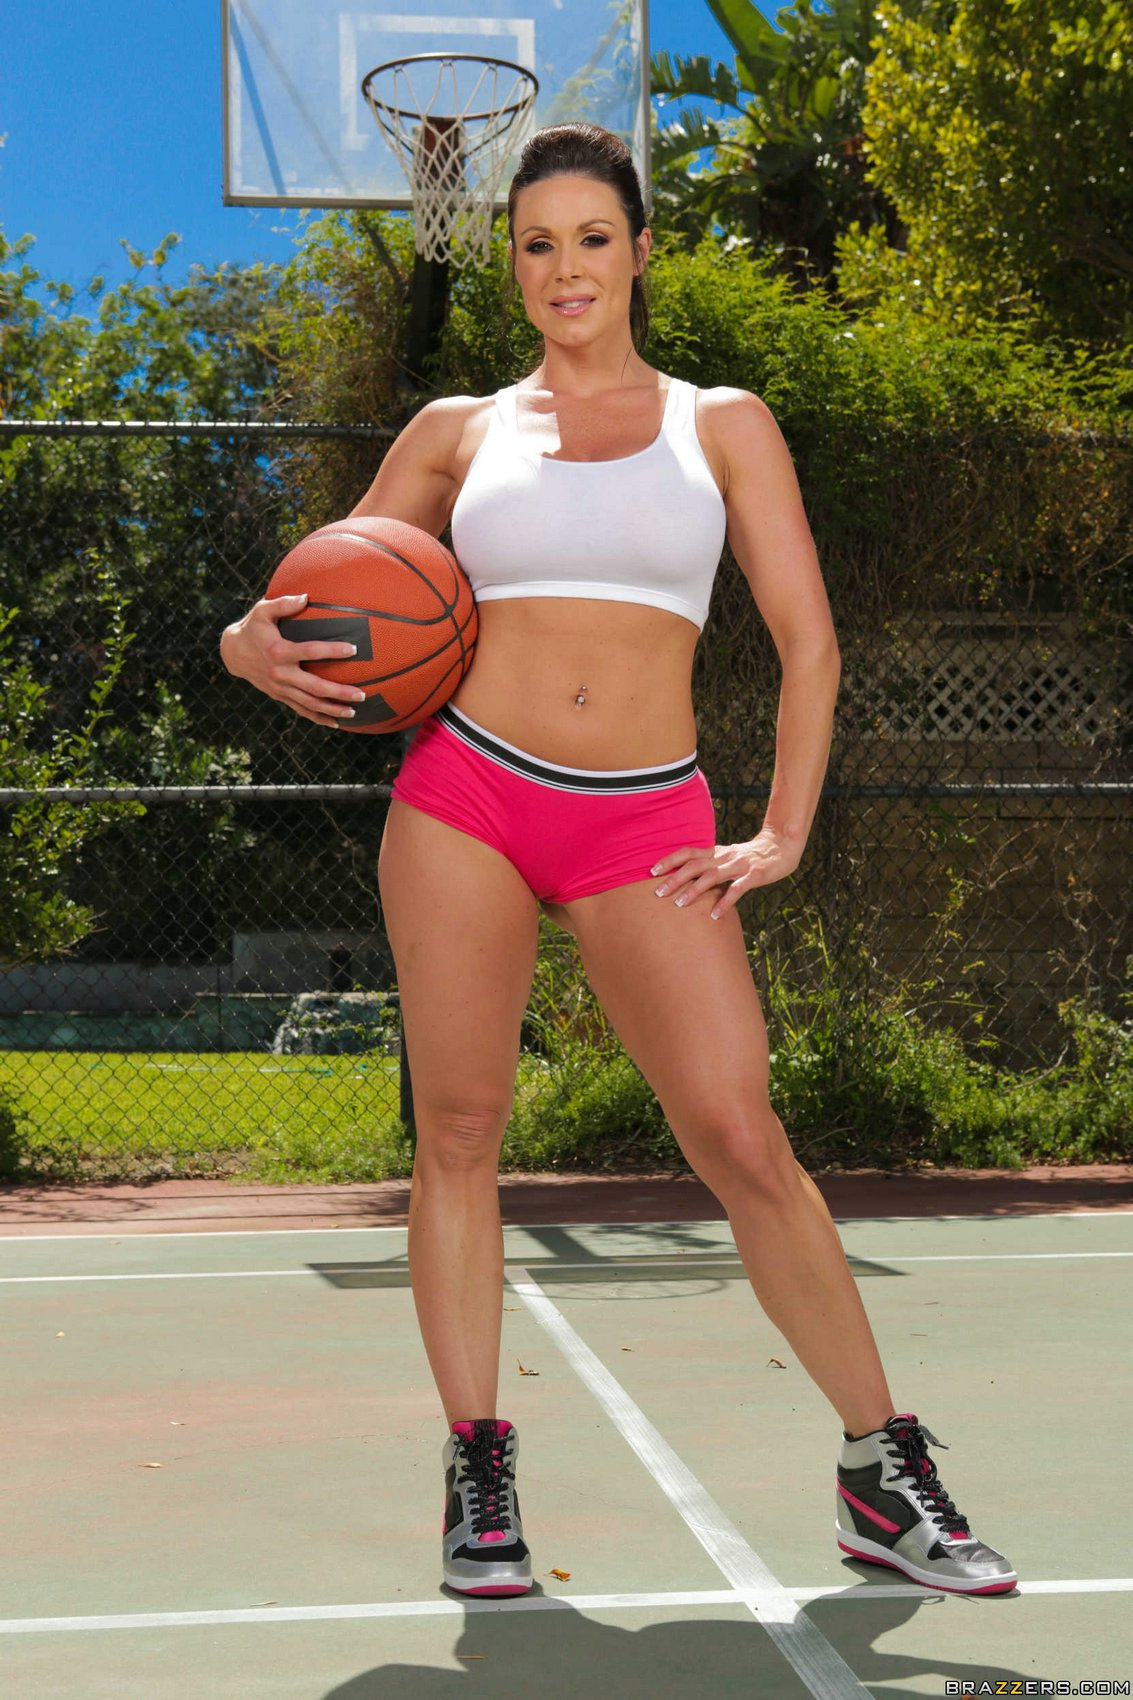 Basketball Porn basketball player kendra lust posing for your pleasure